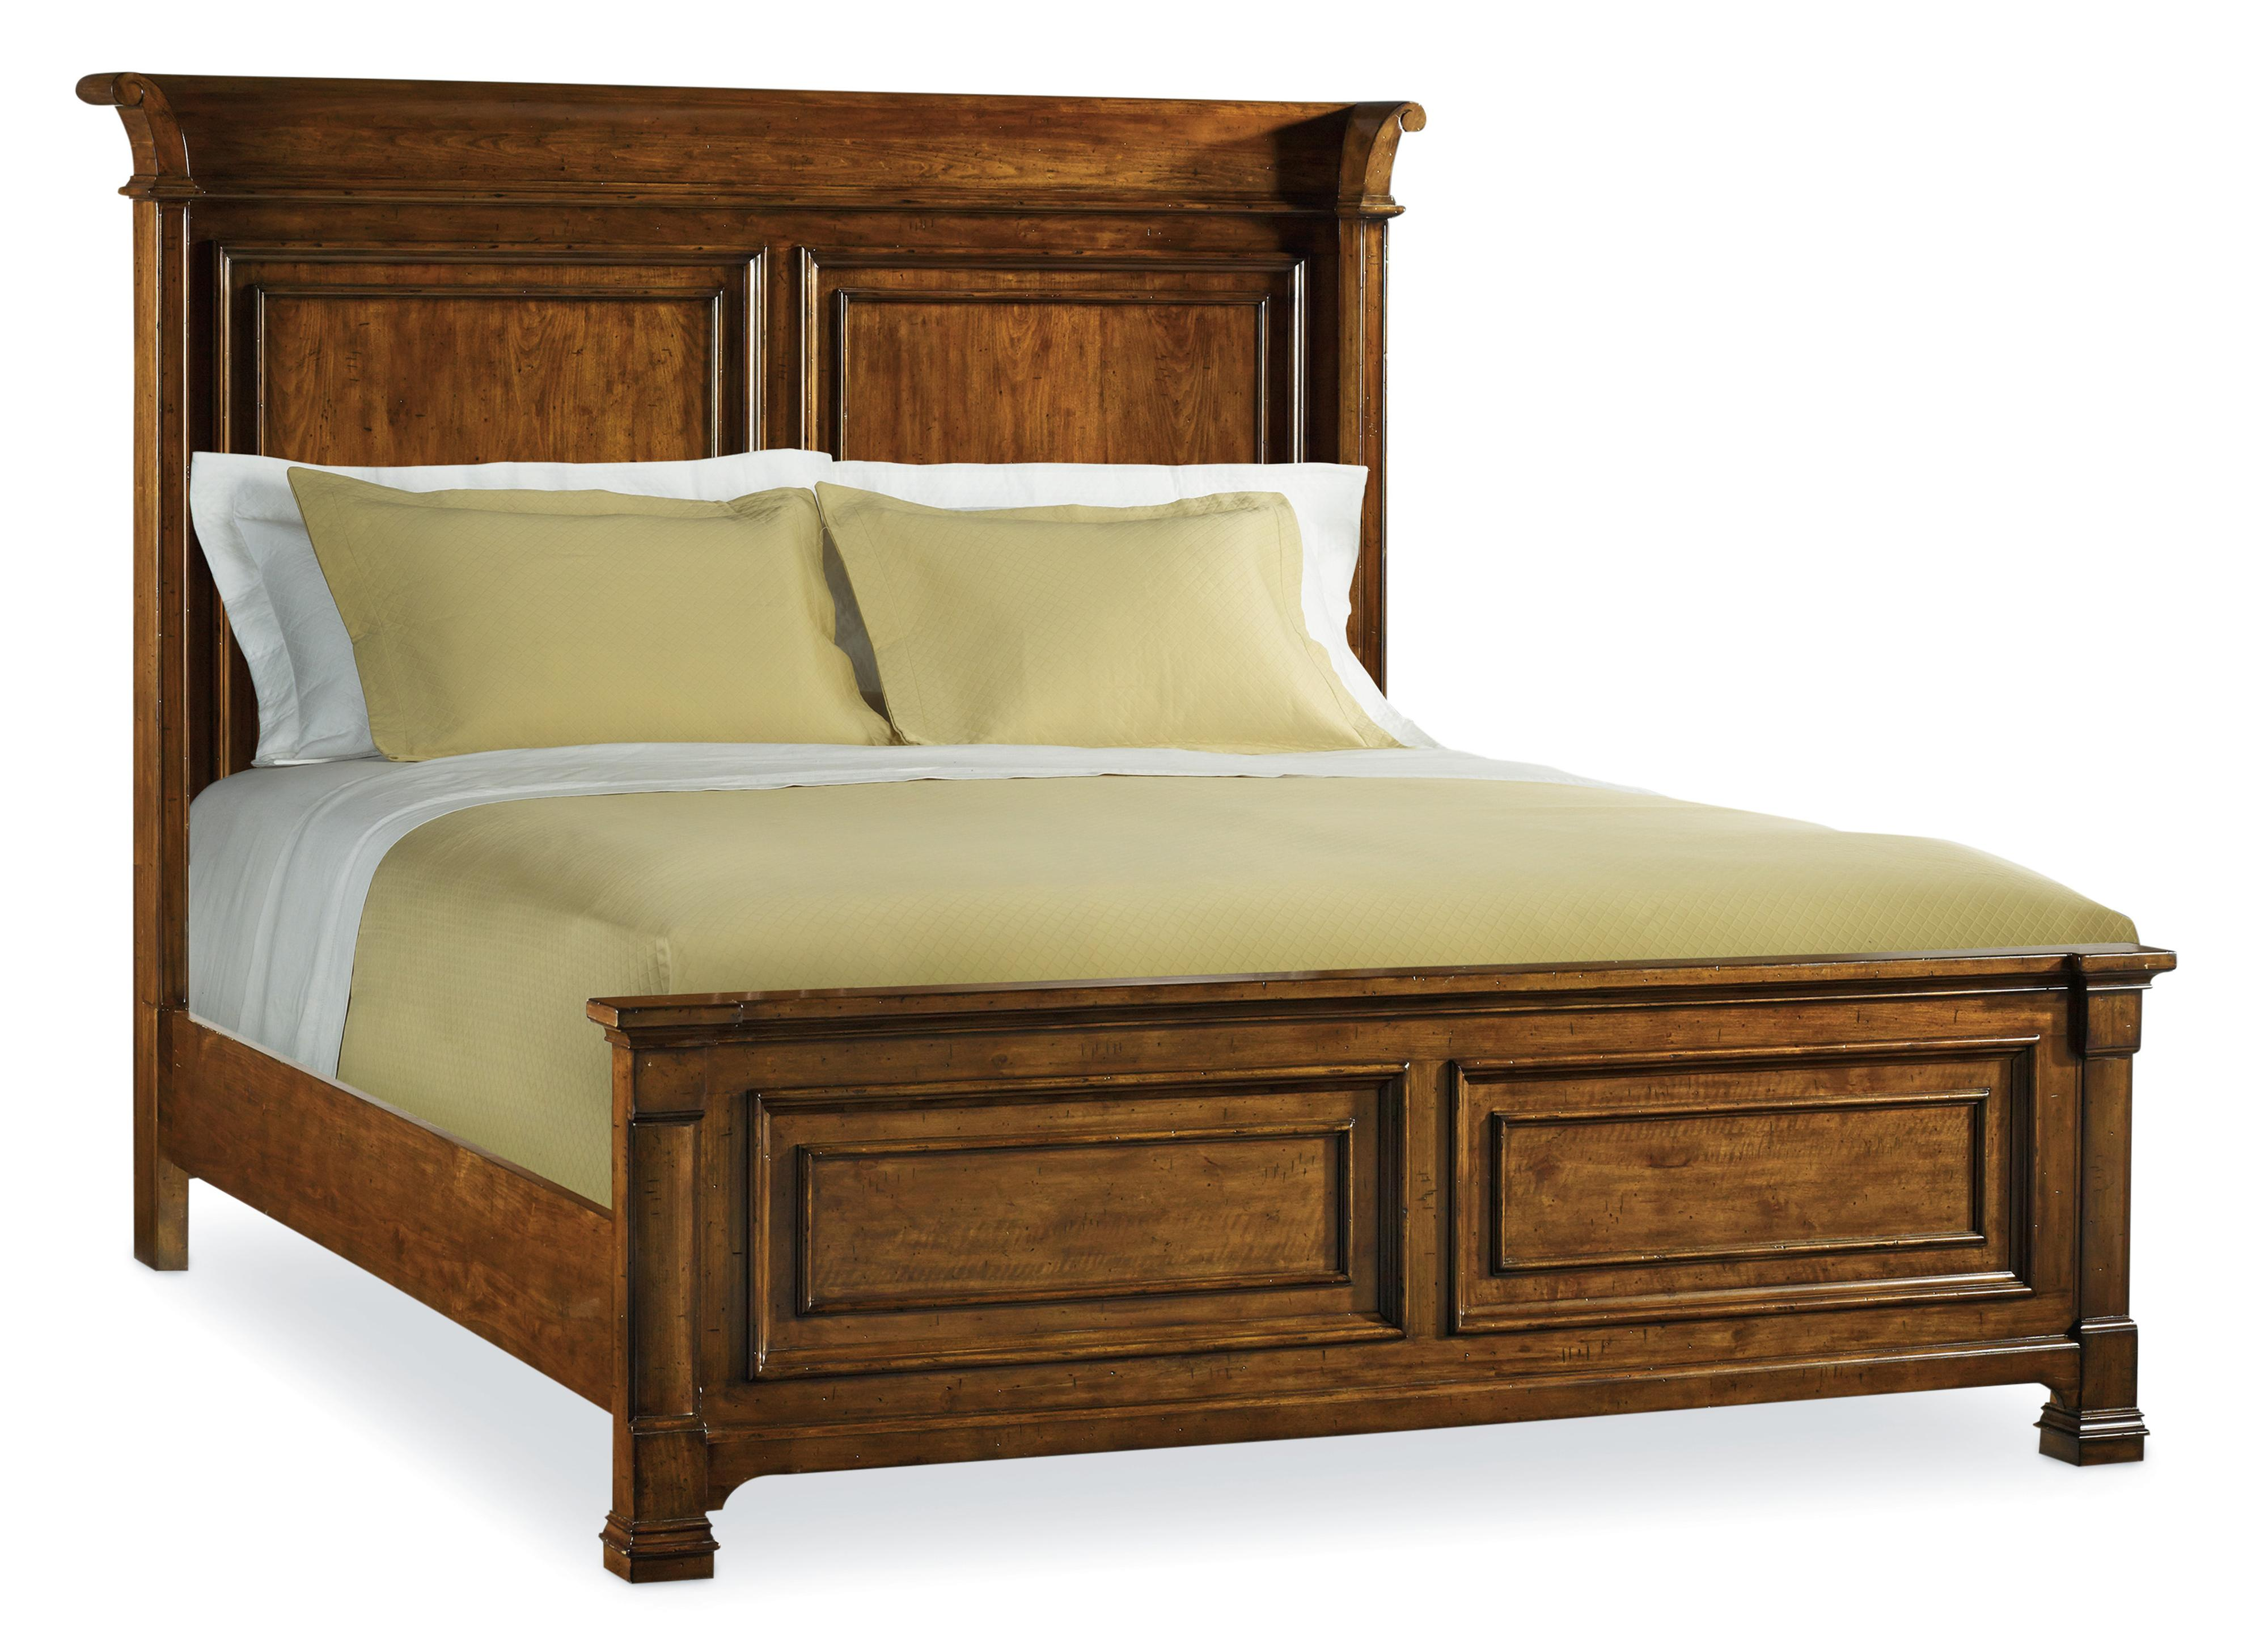 Tynecastle Queen Panel Bed by Hooker Furniture at Upper Room Home Furnishings